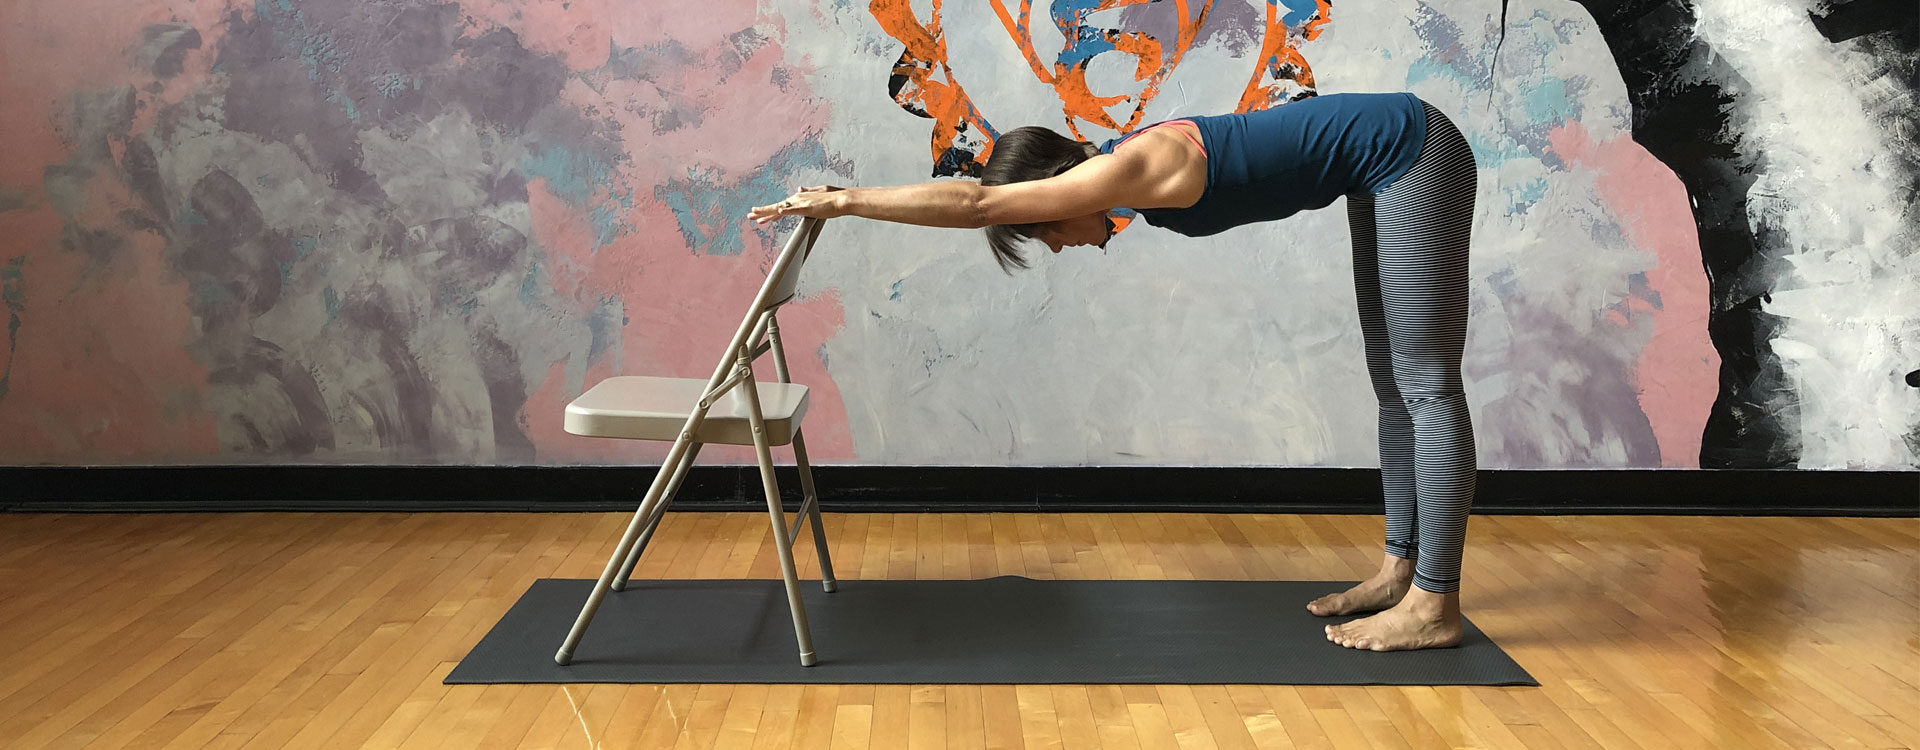 swagtail-tfg-chair-yoga-banner1